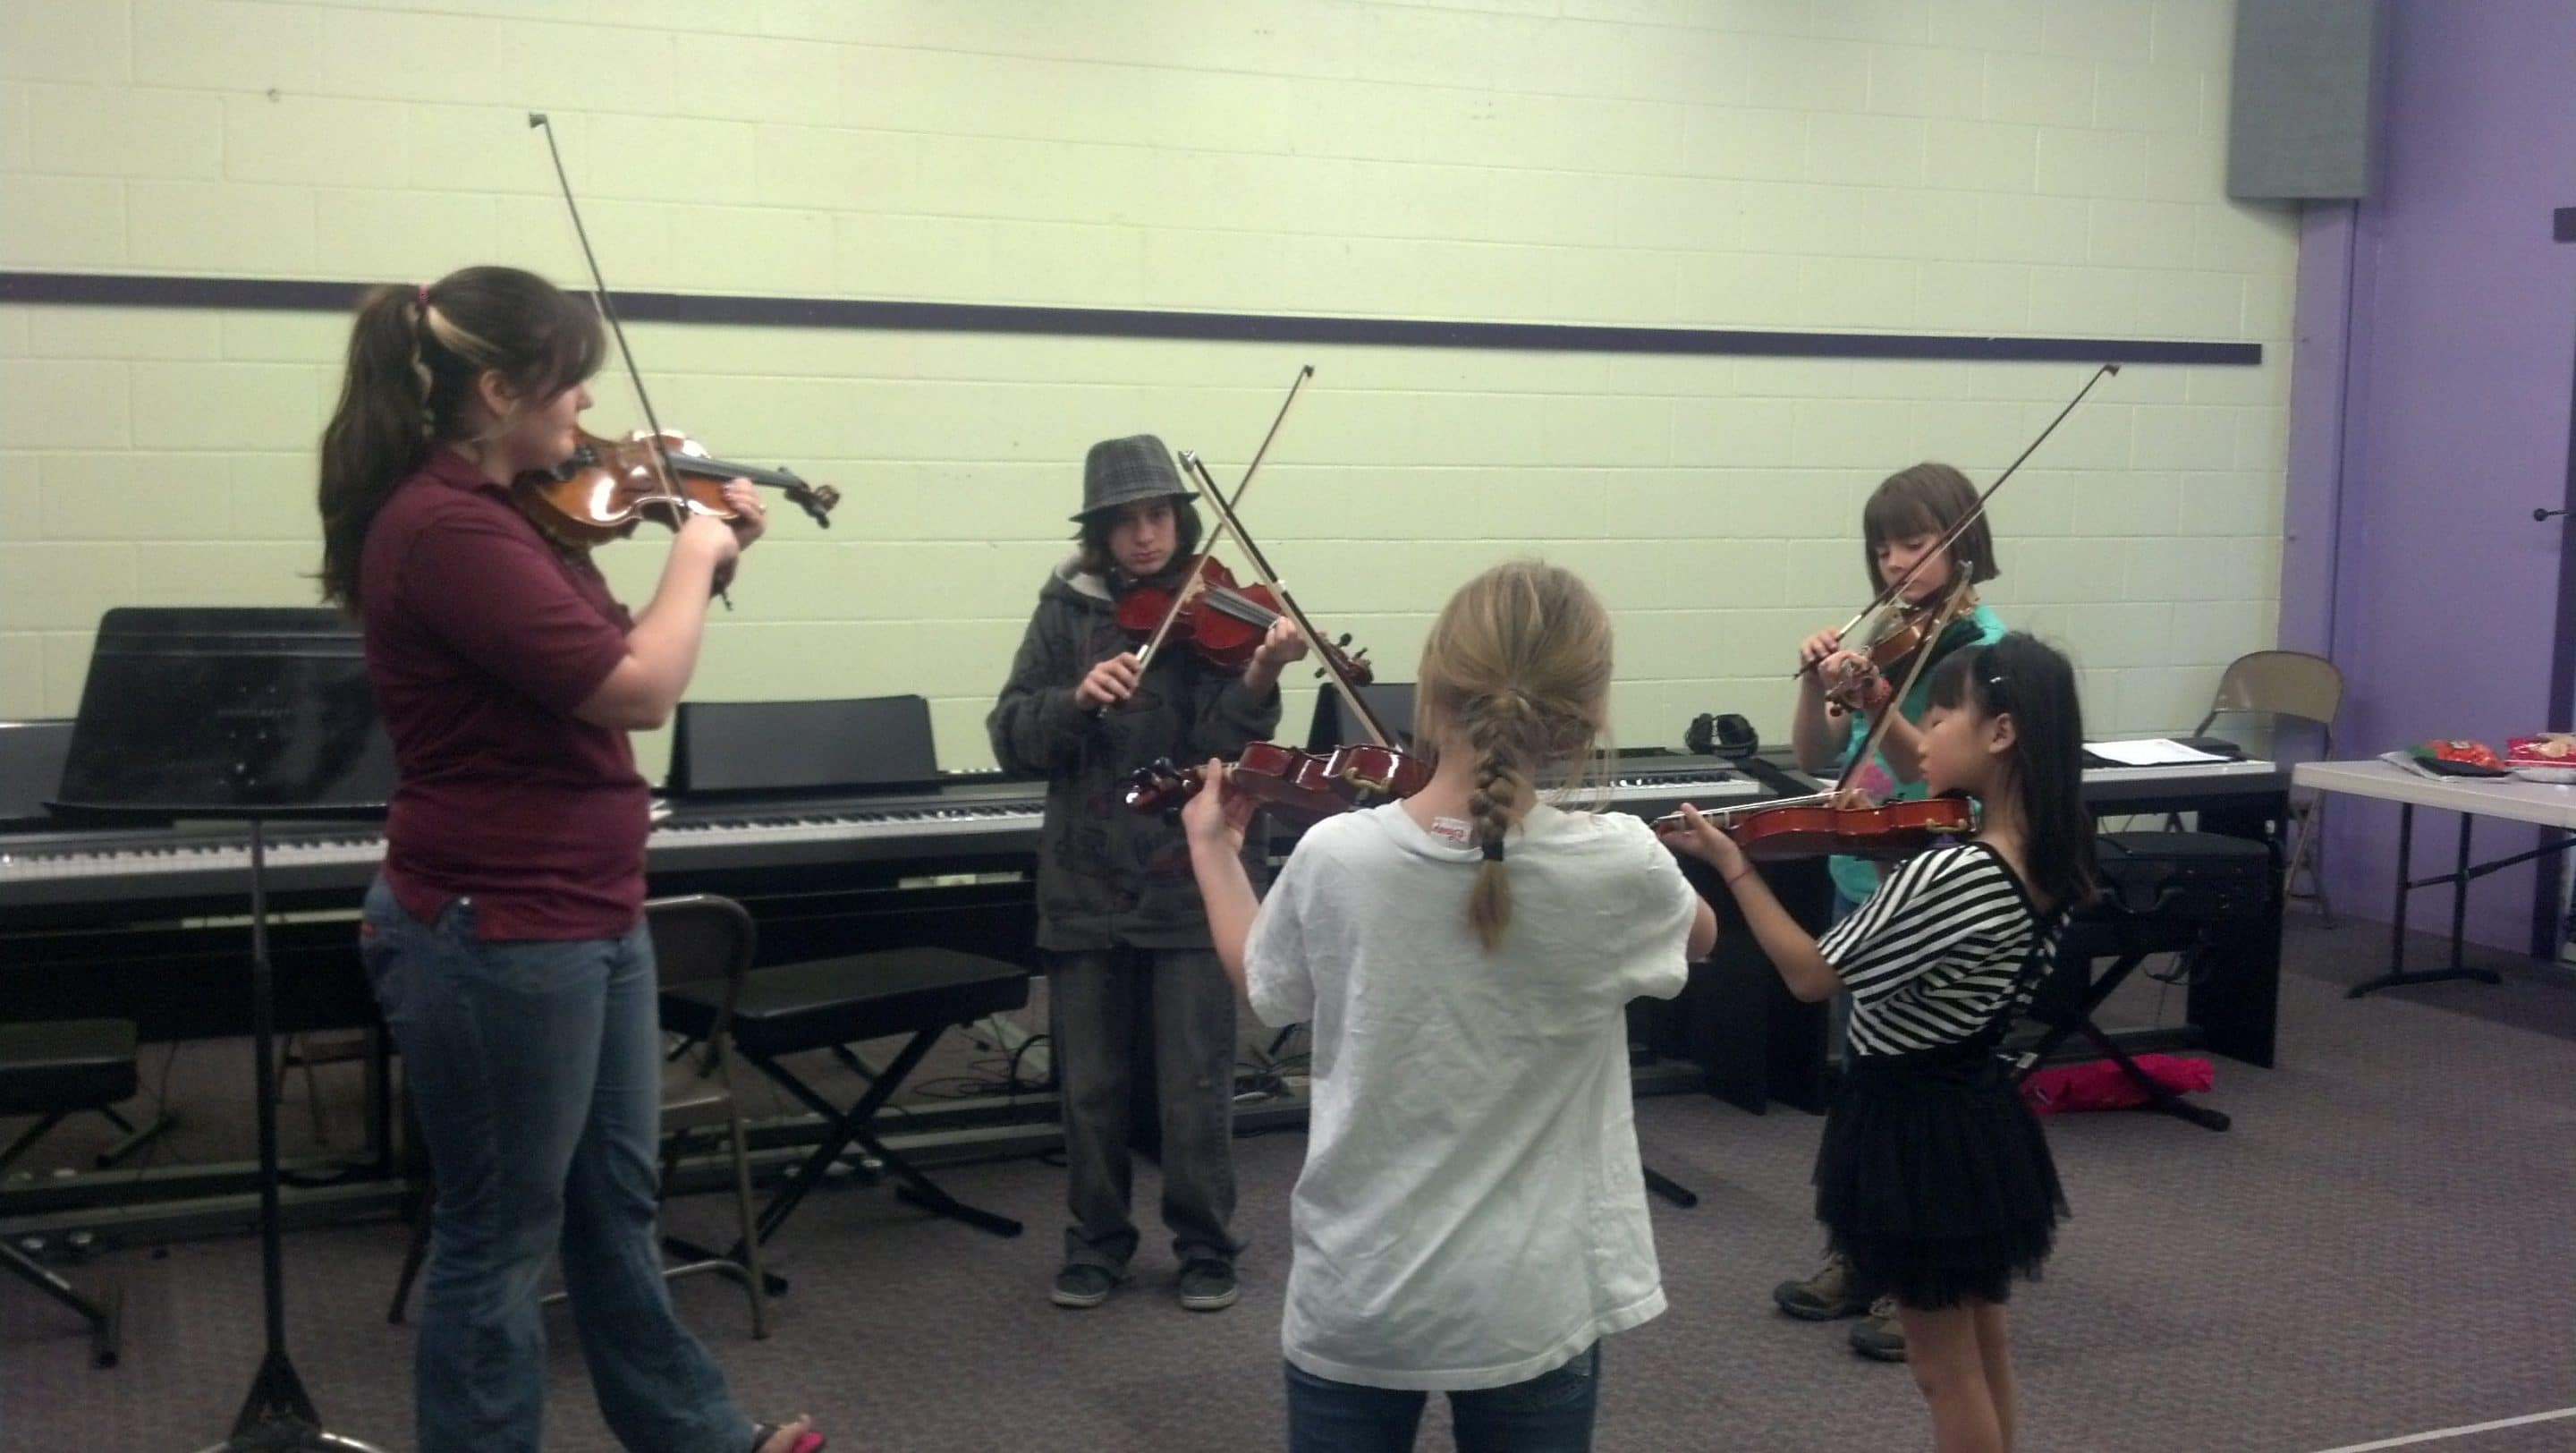 Sarah teaching a group of children violin